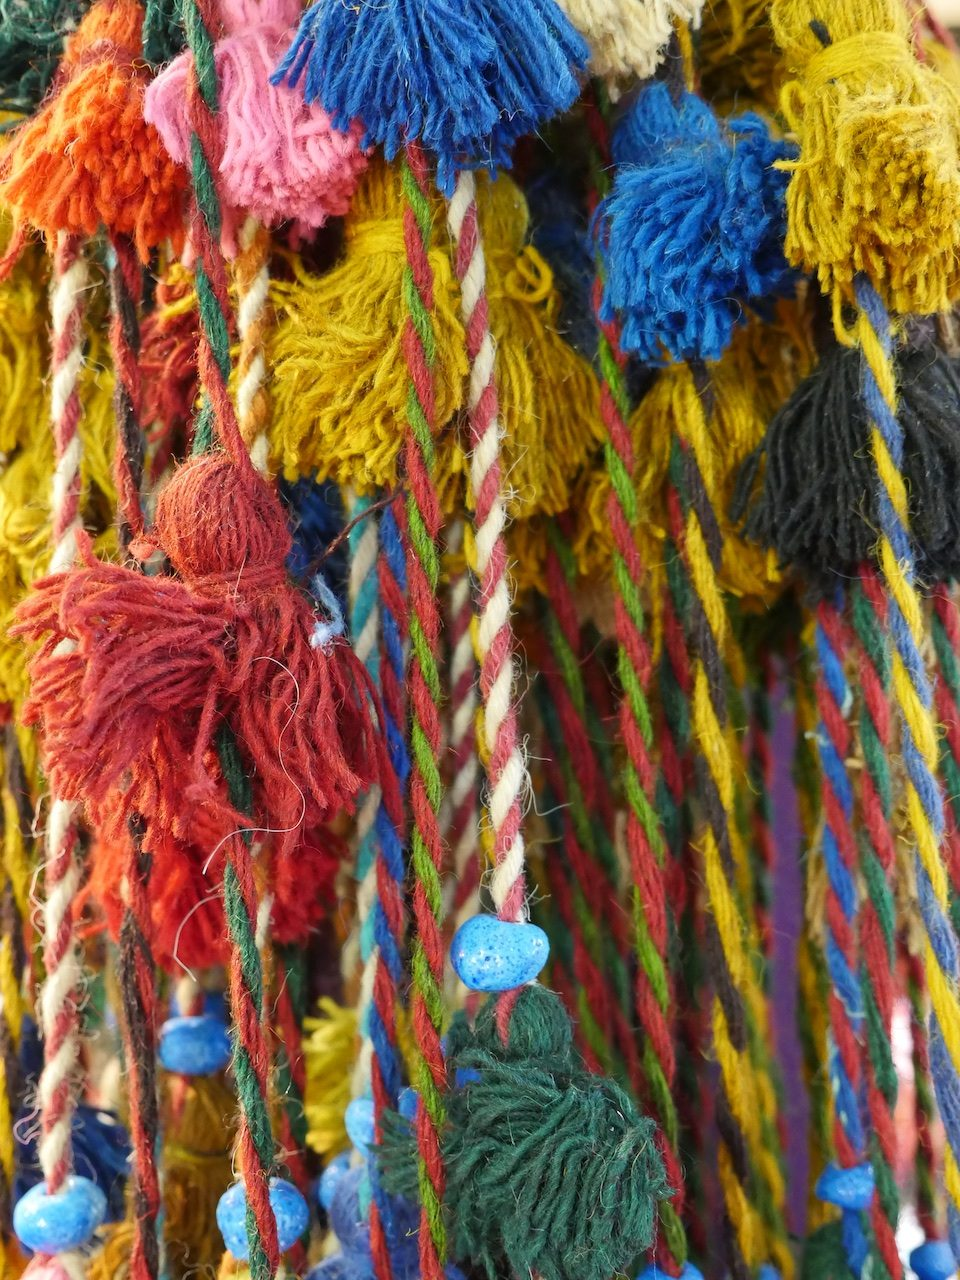 Colourful tassels